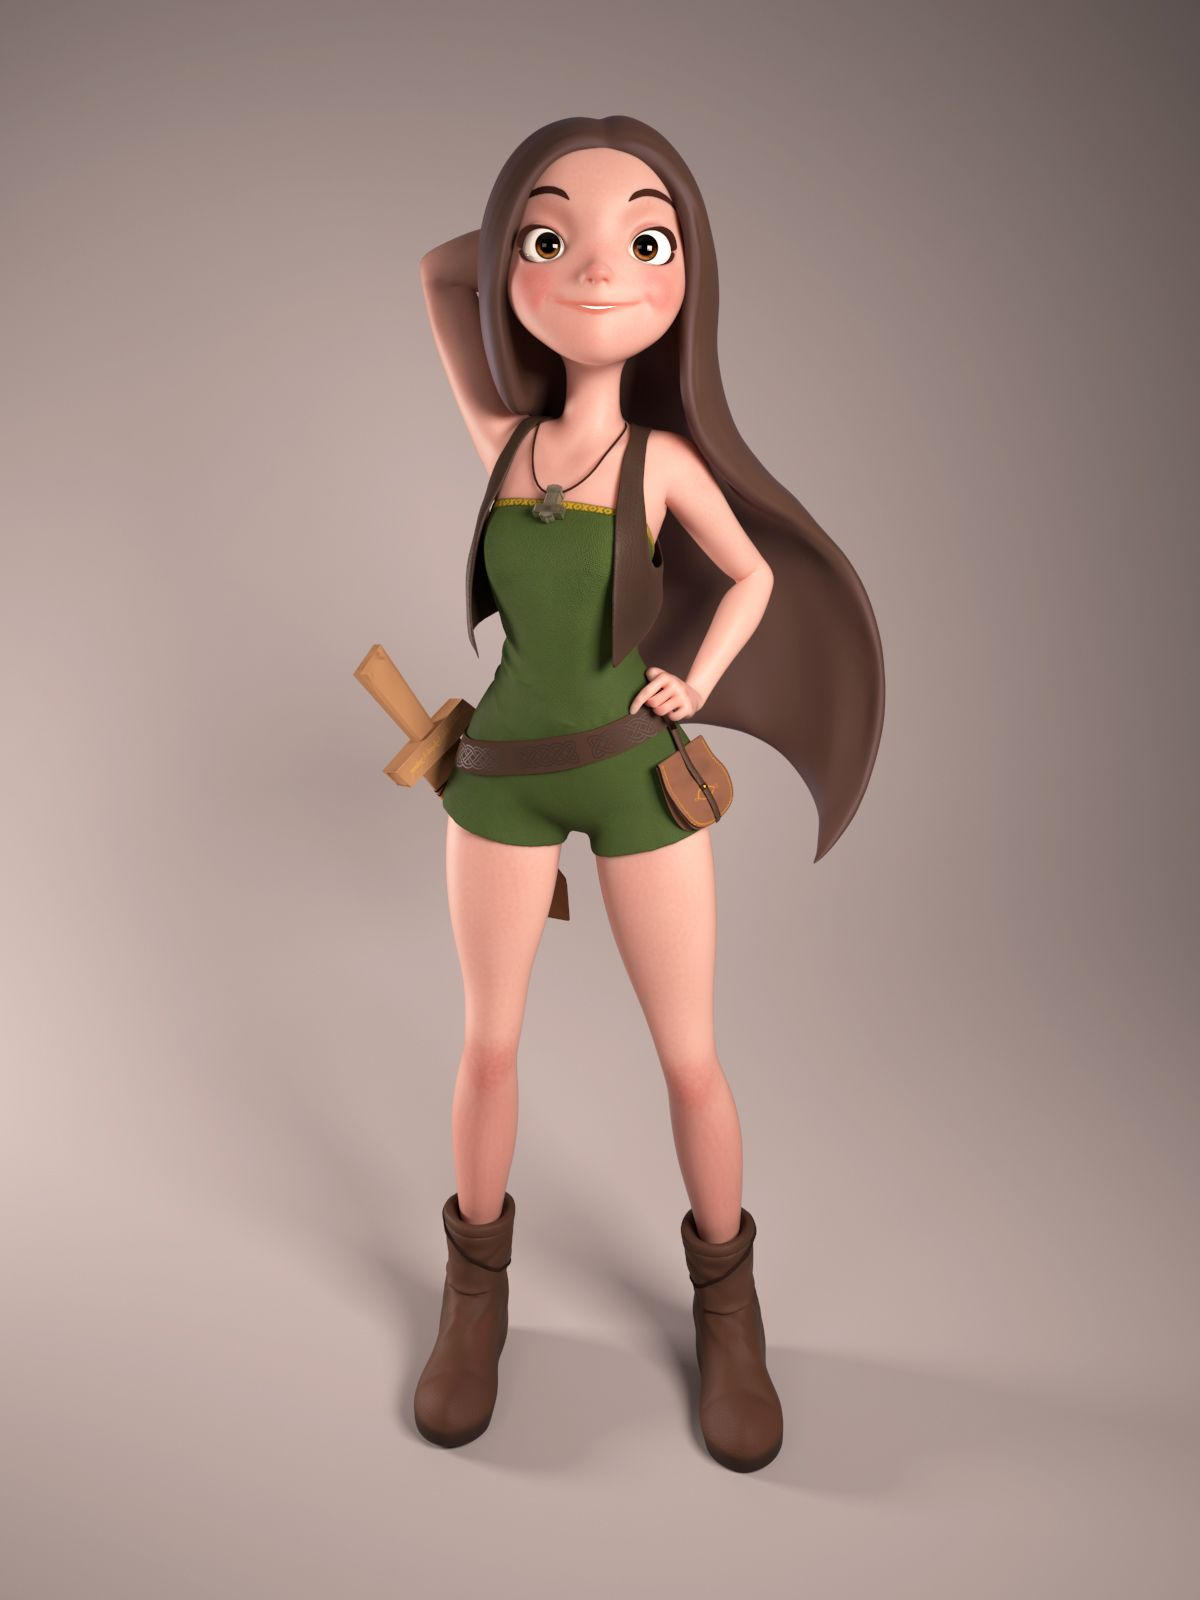 pintapkes on 3d characters - female | pinterest | 3d character